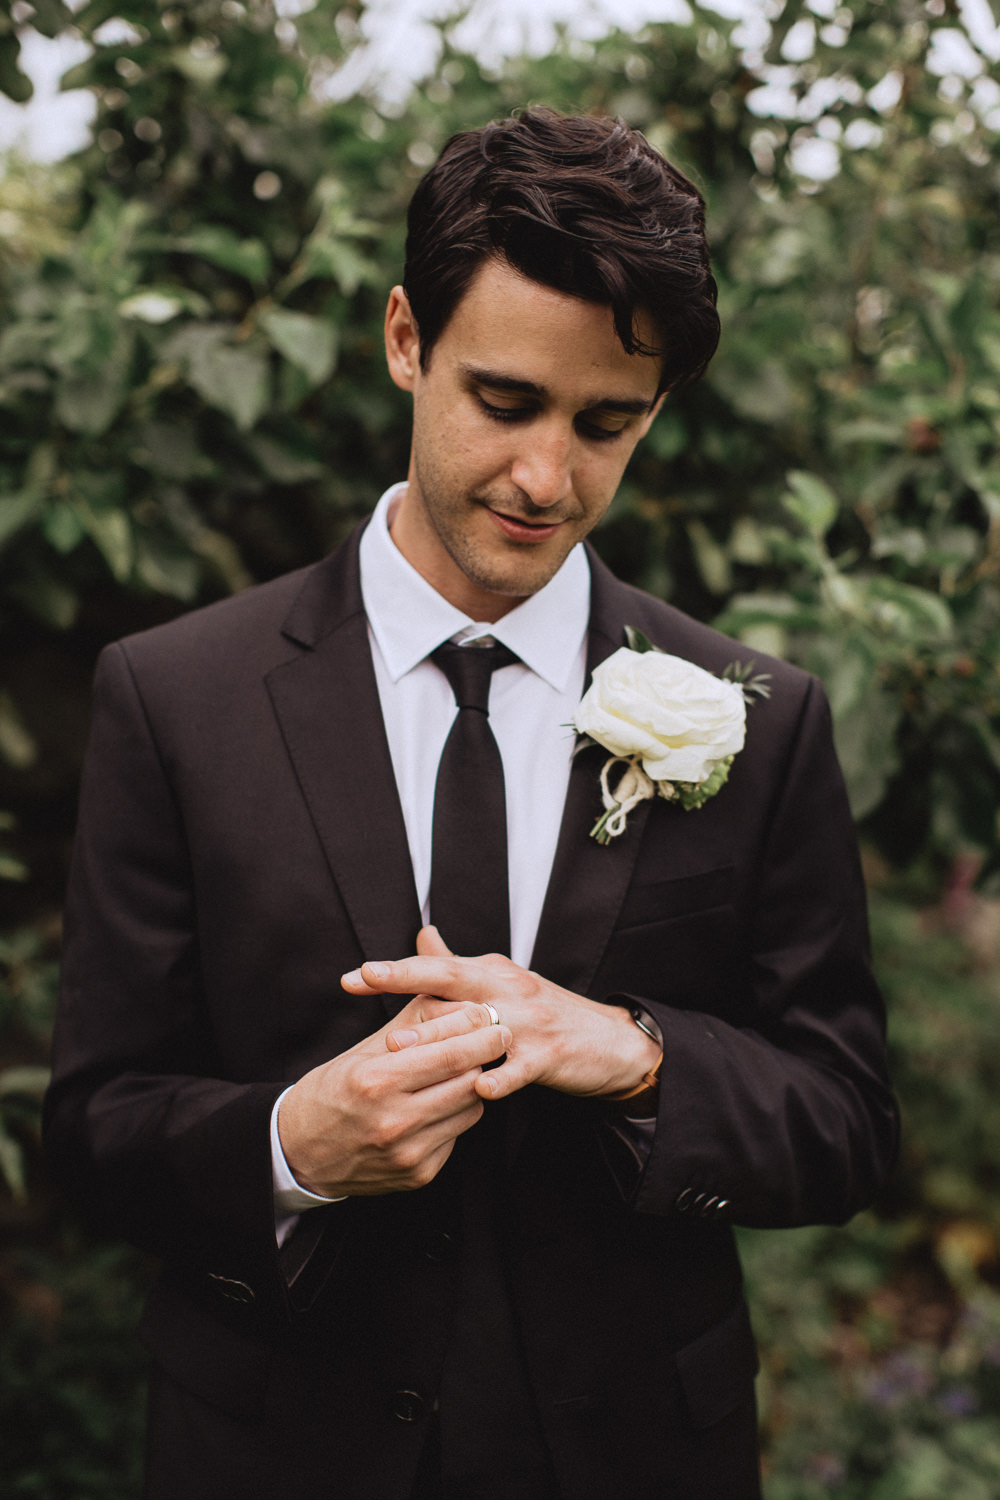 Groom Suit Tie Natural Marquee Wedding Fox & Bear Photography